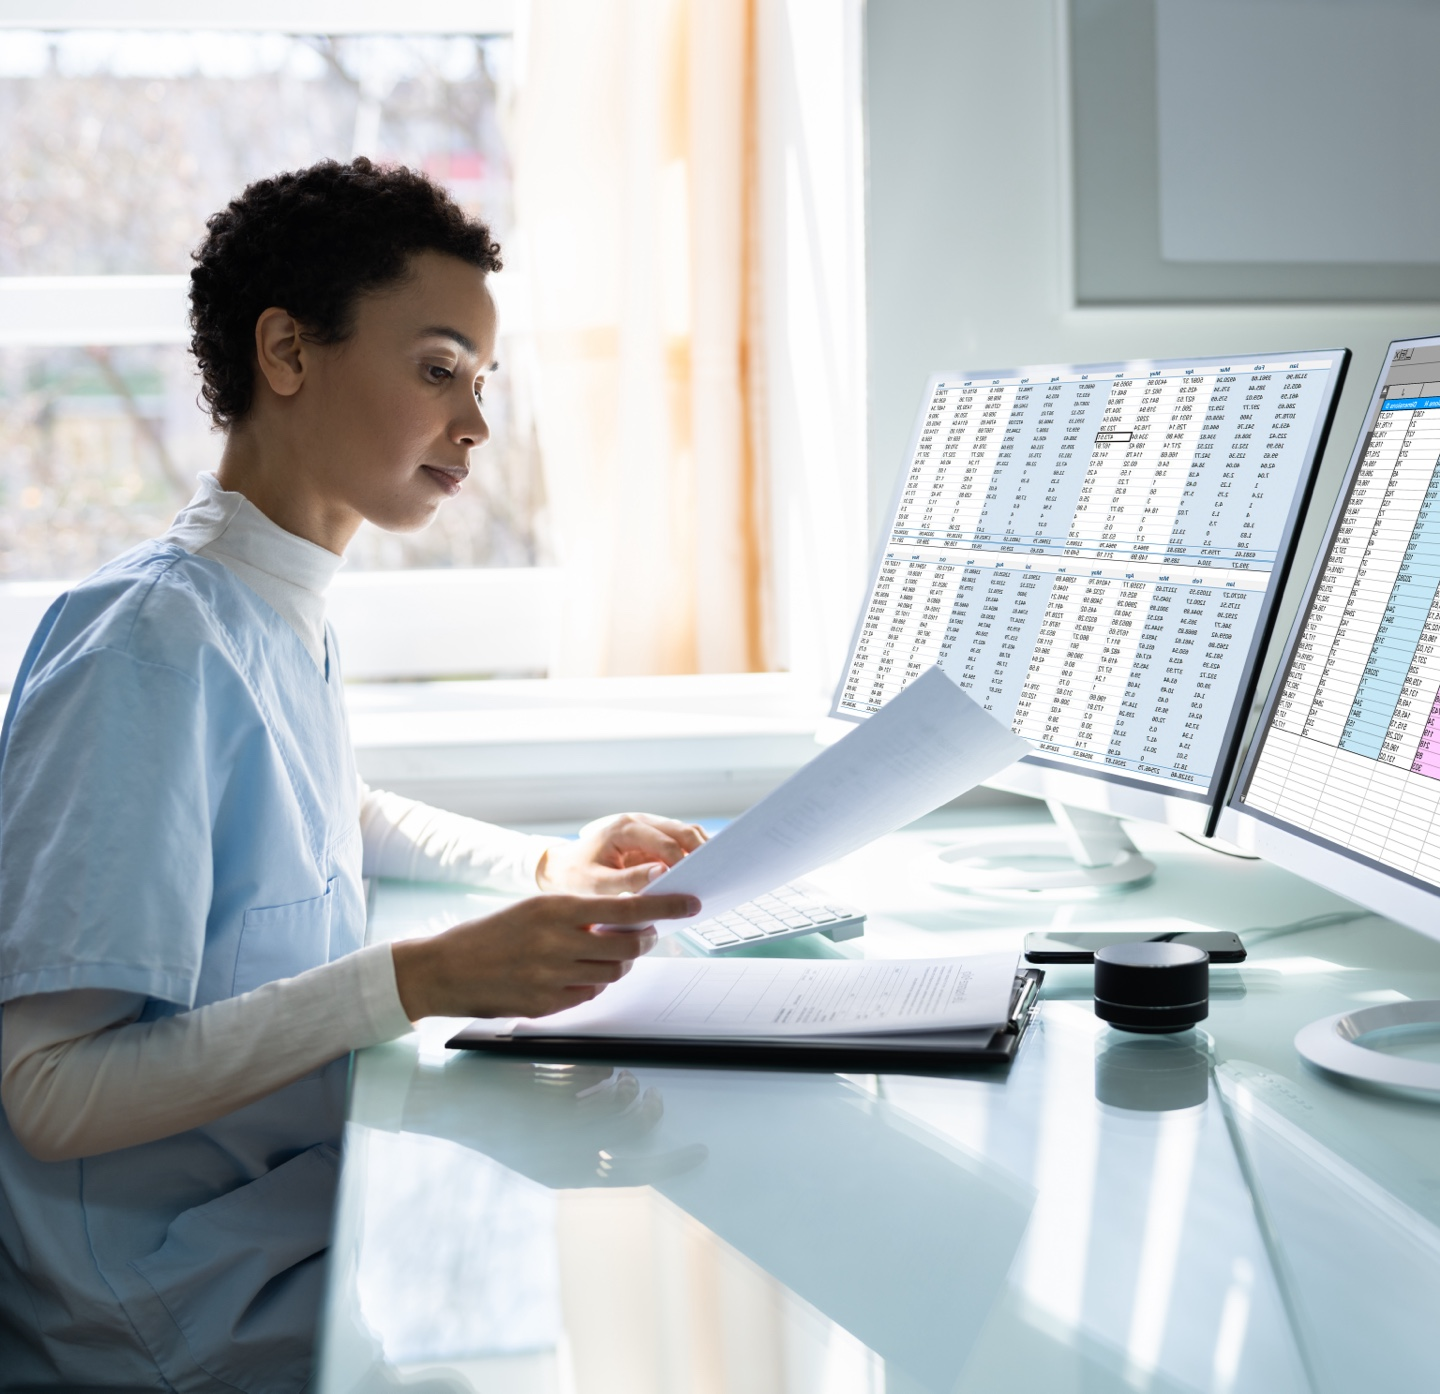 Medical employee reviewing medical billing and collections data